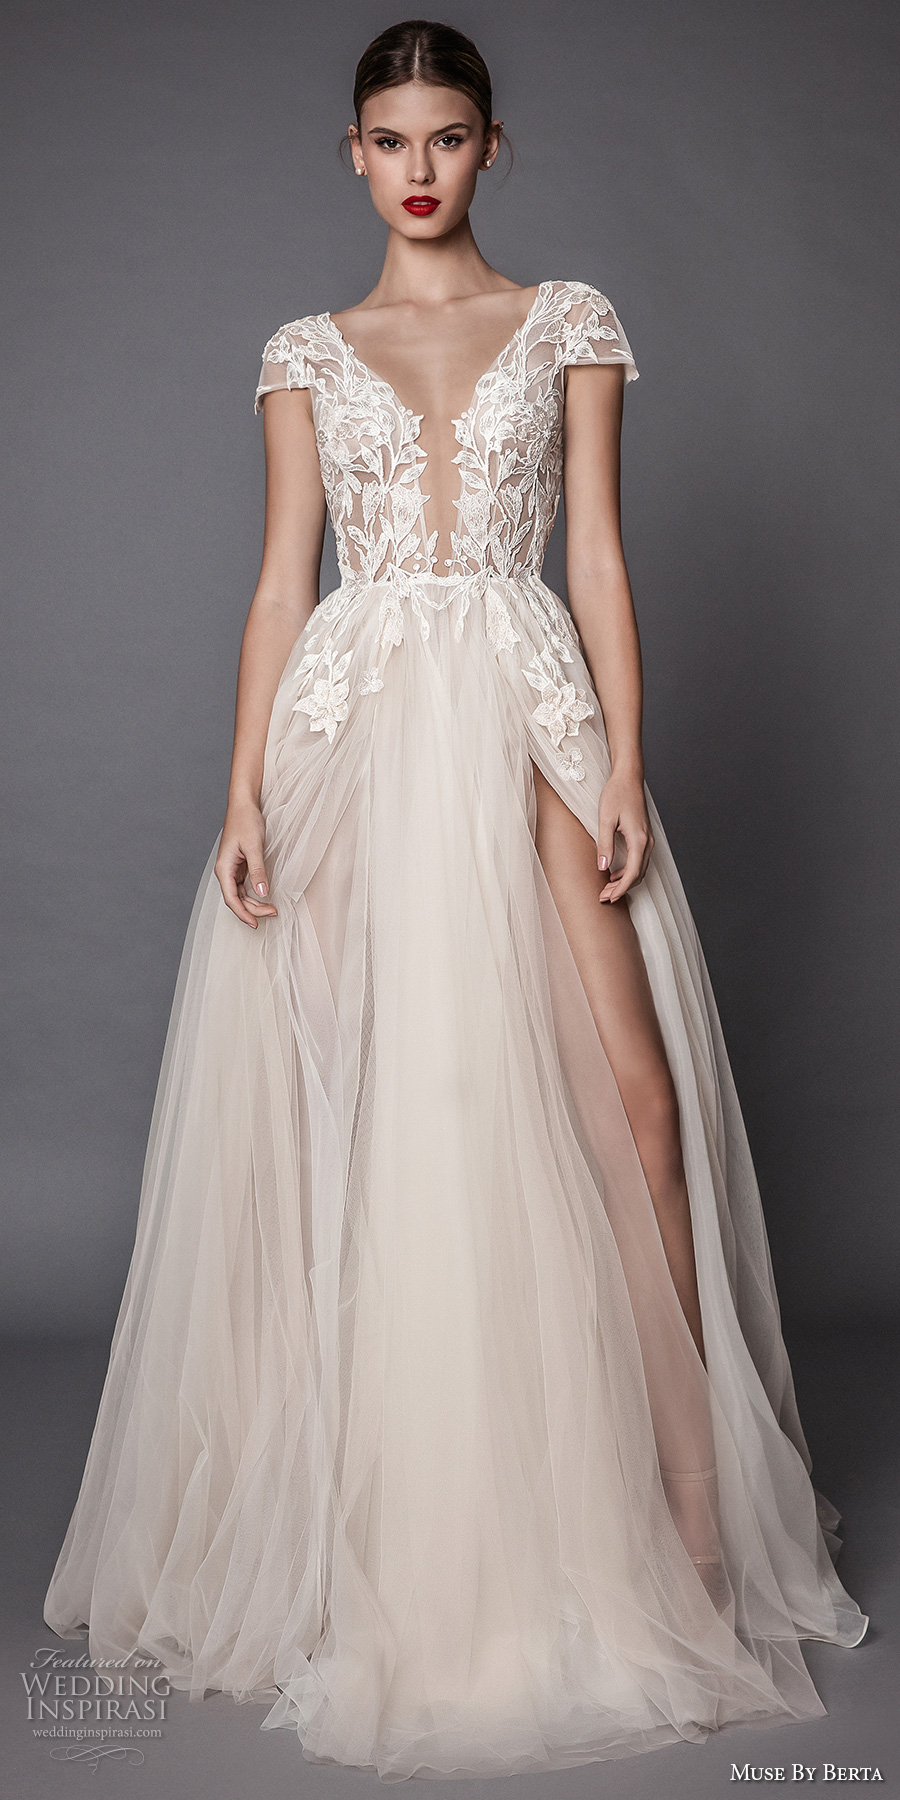 Muse by berta fall 2017 wedding dresses part 1 crazyforus for Fall lace wedding dresses